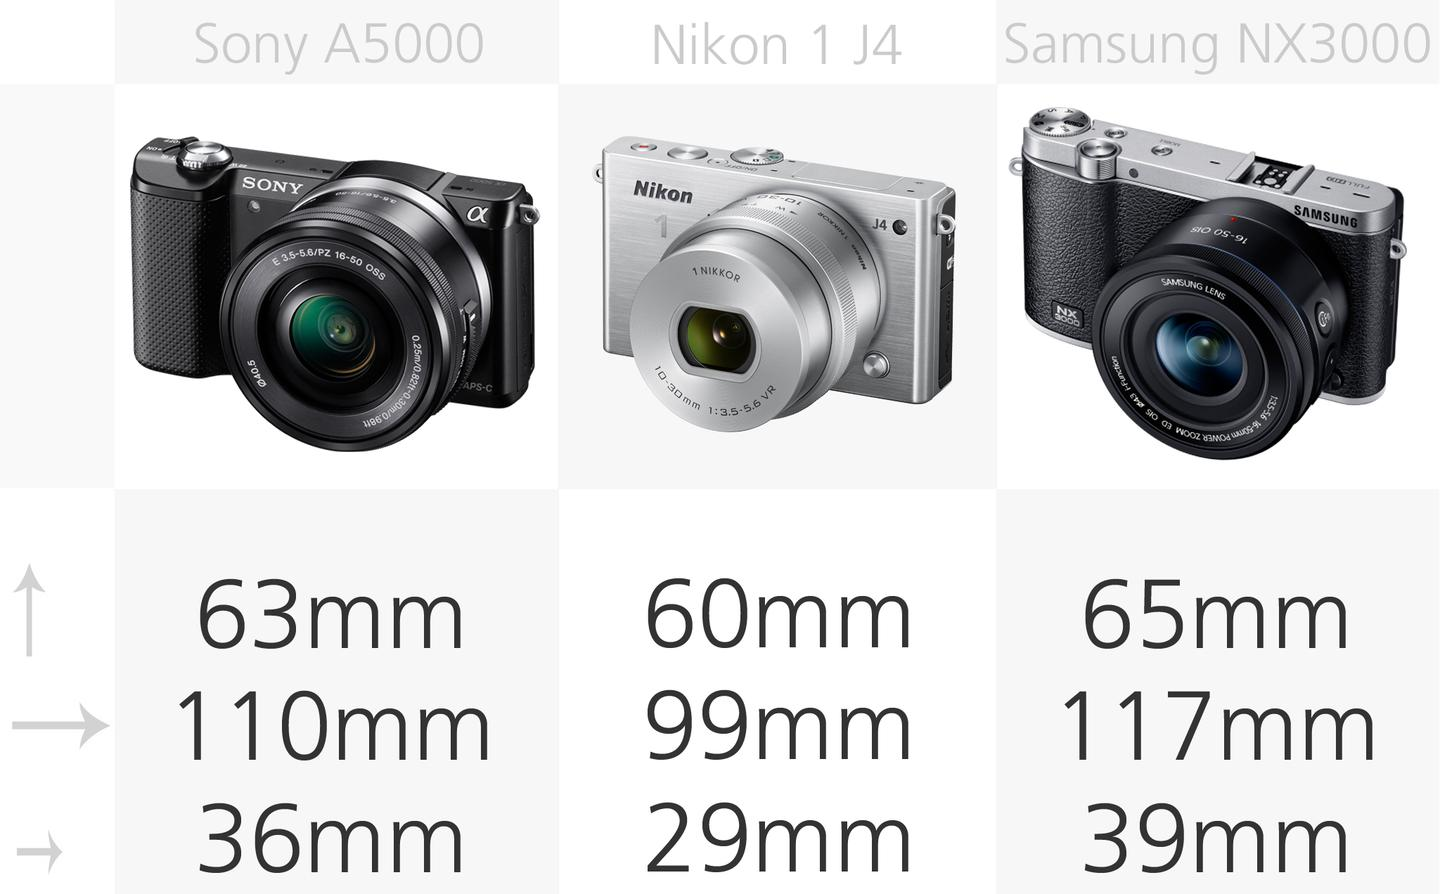 Mirrorless camera dimensions comparison (row 1)